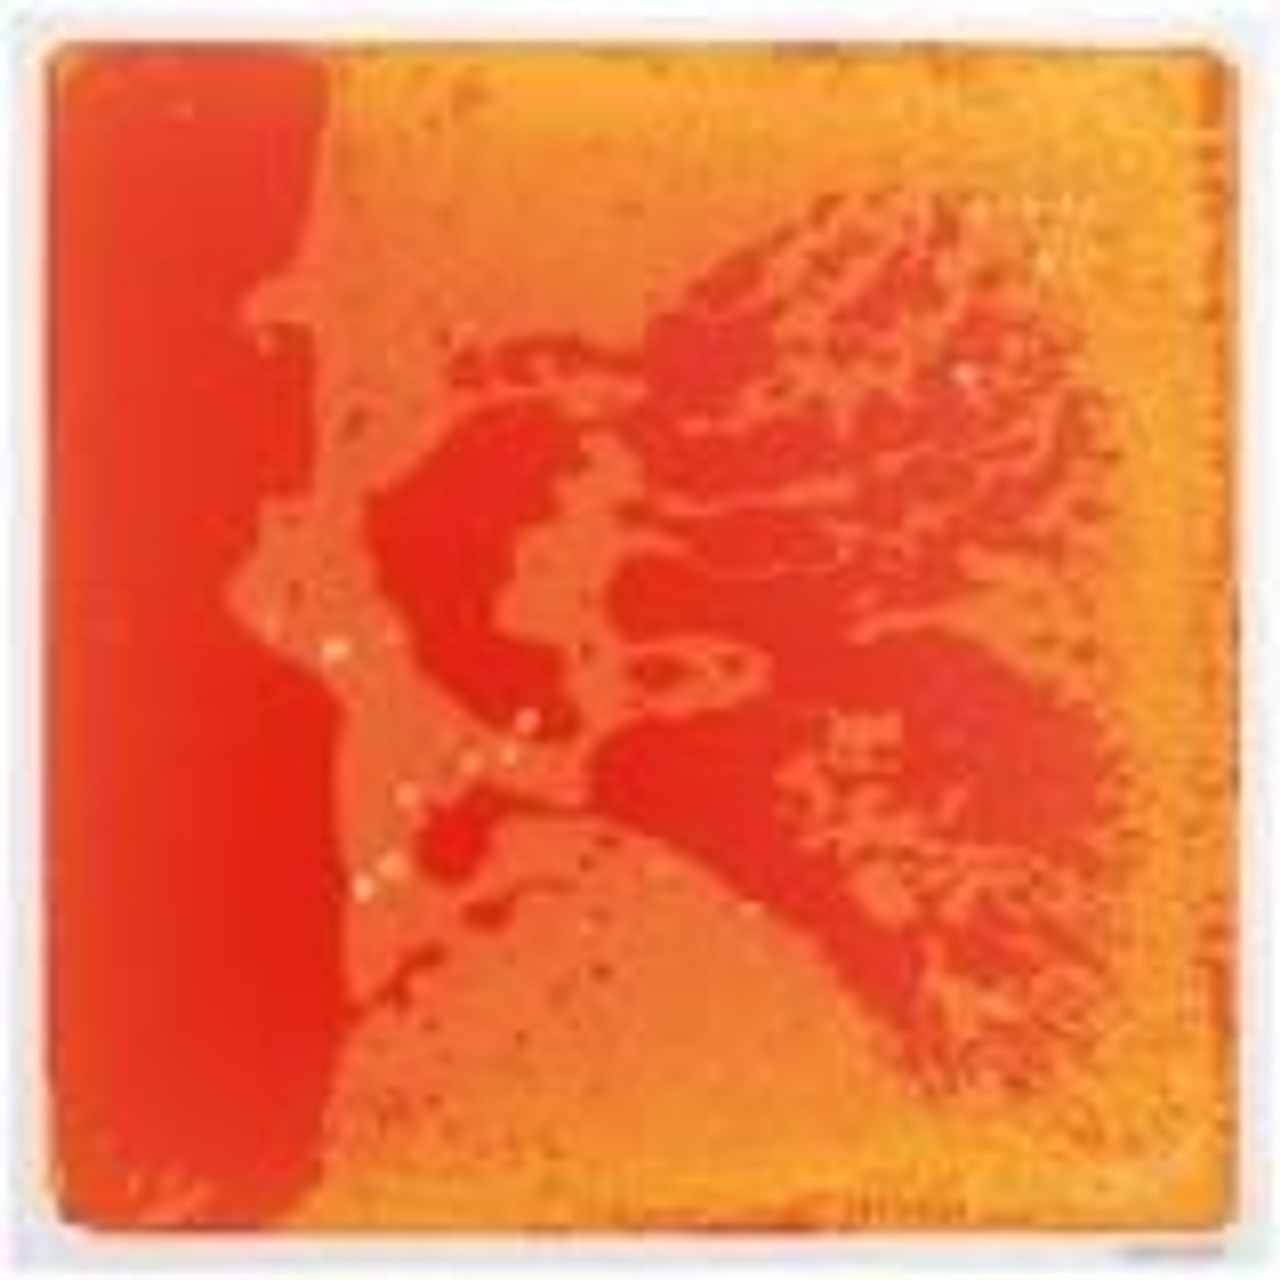 Orange Sensory Floor Tiles - Liquid Filled